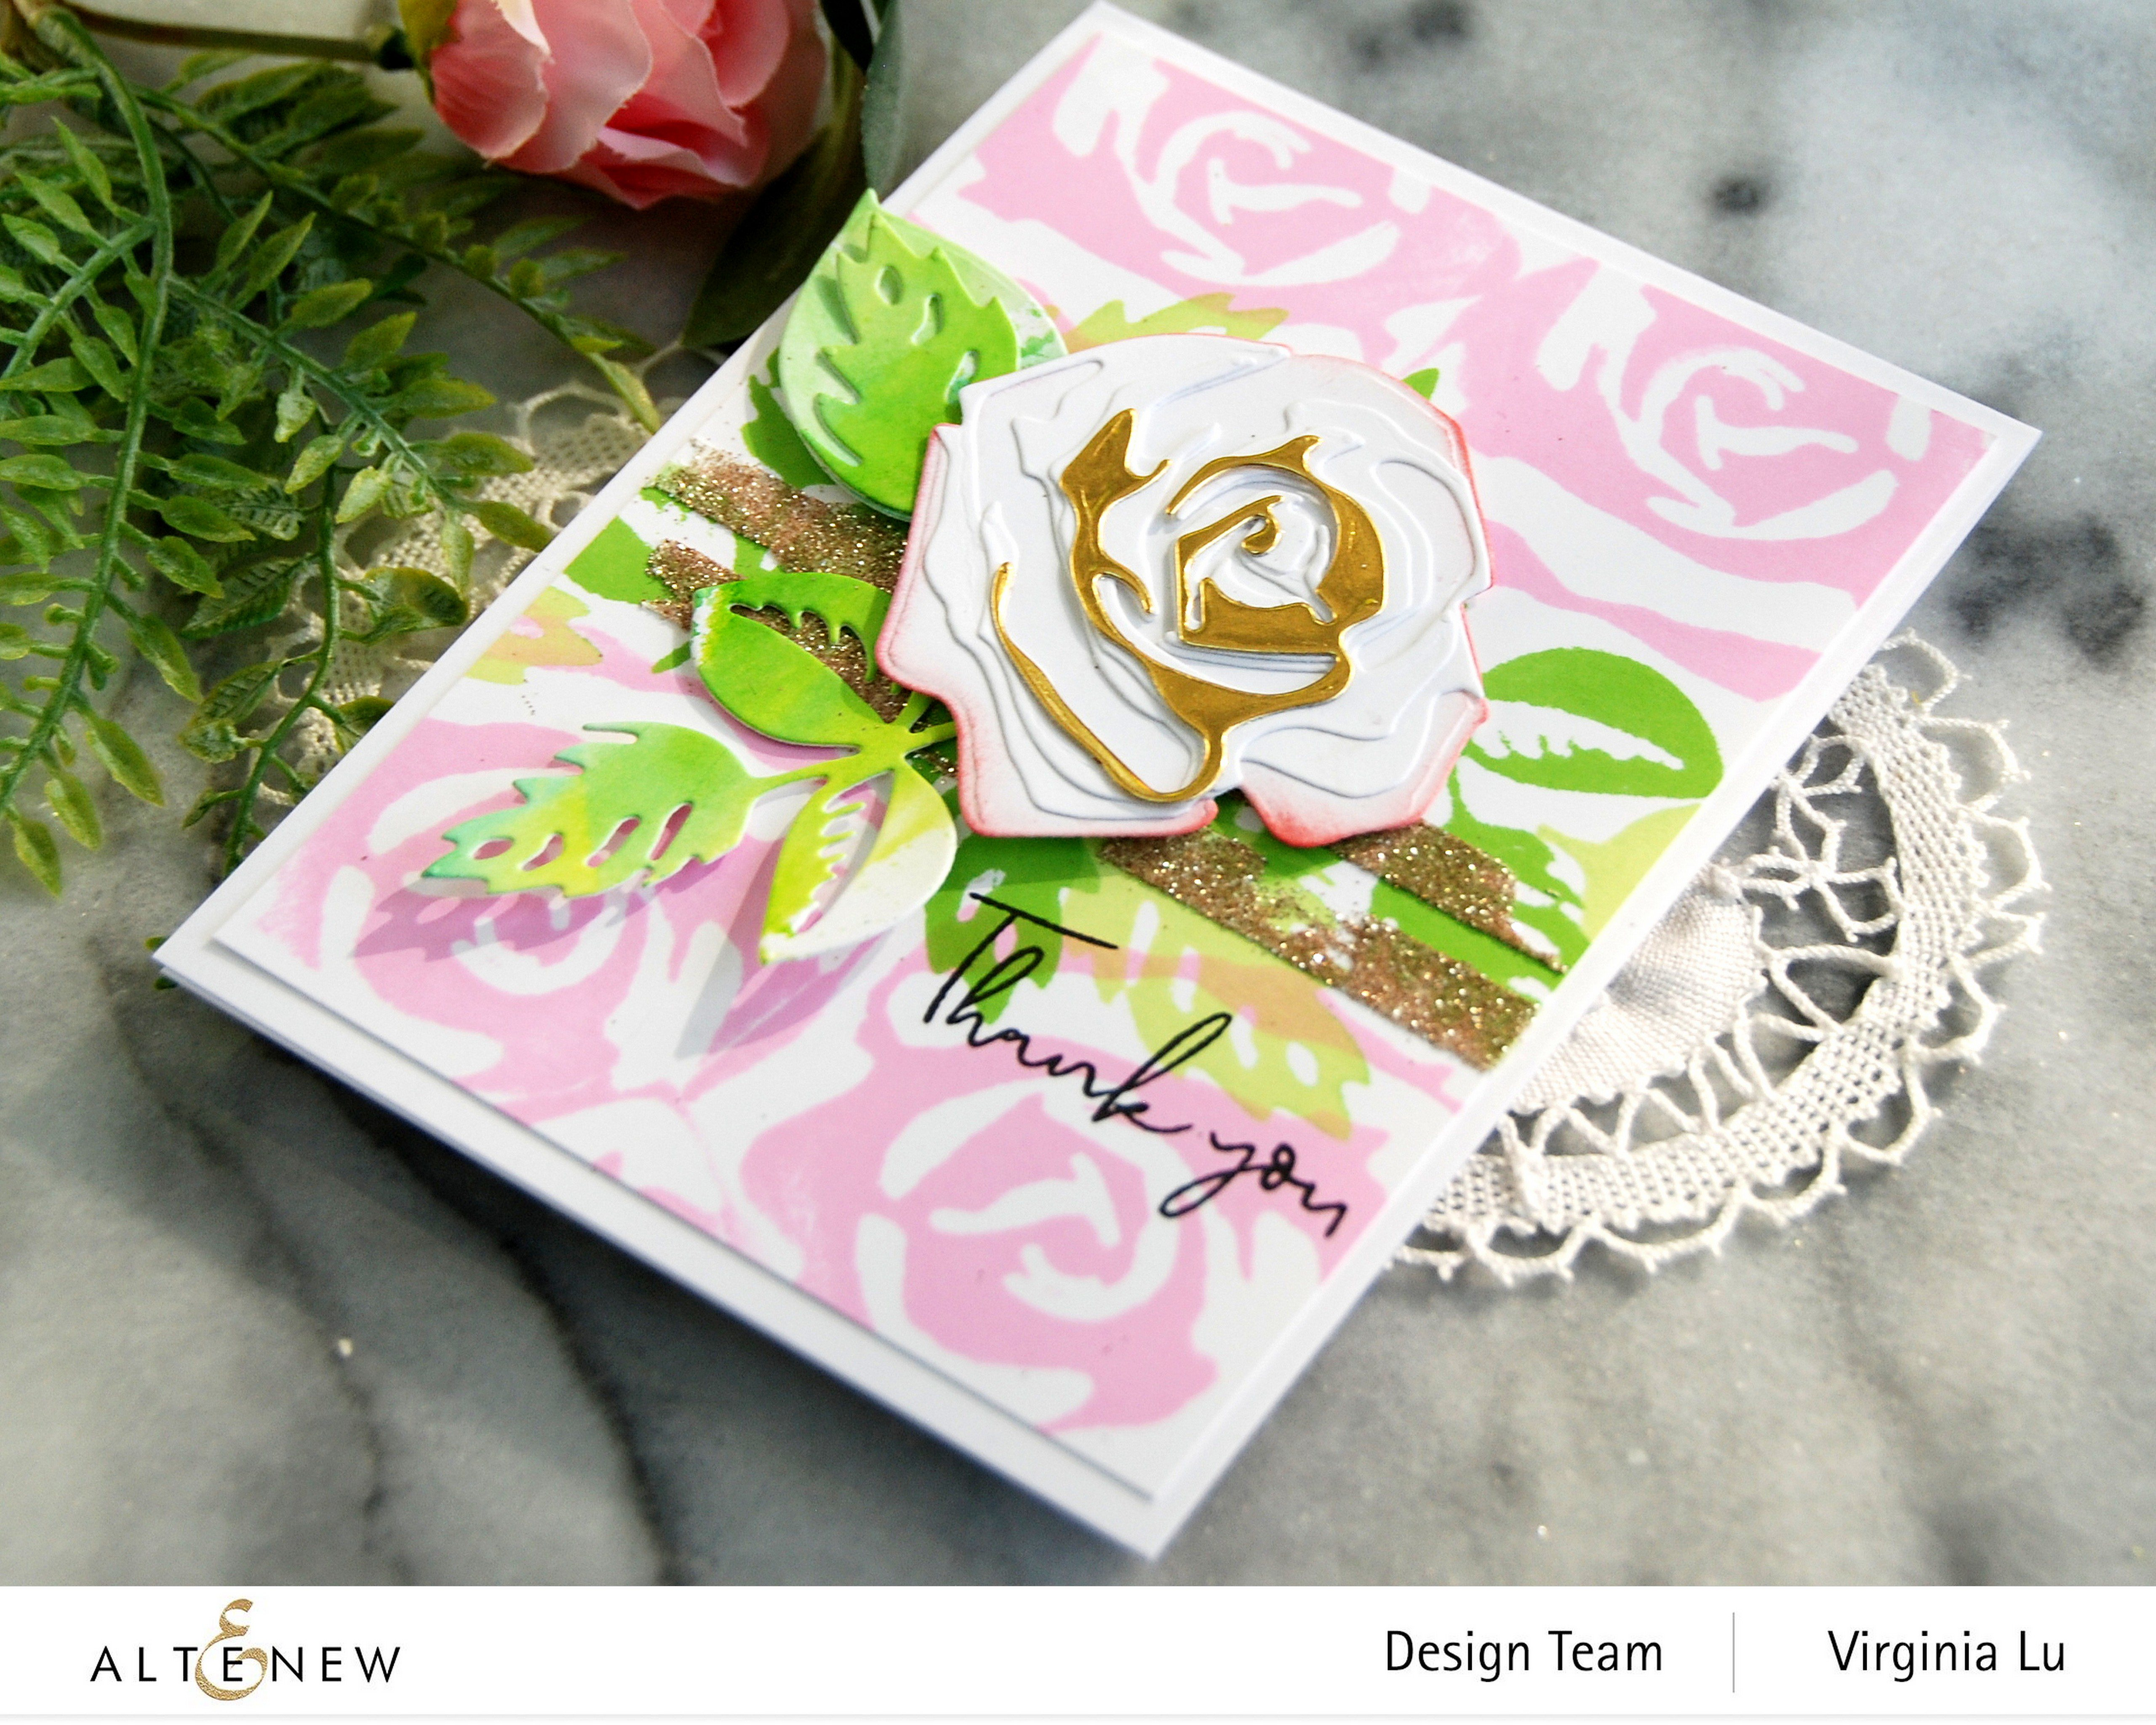 Altenew-Craft-a-FlowerRose-Stripe Stencil-PAF-CallaLily-EmbossingPaste-002